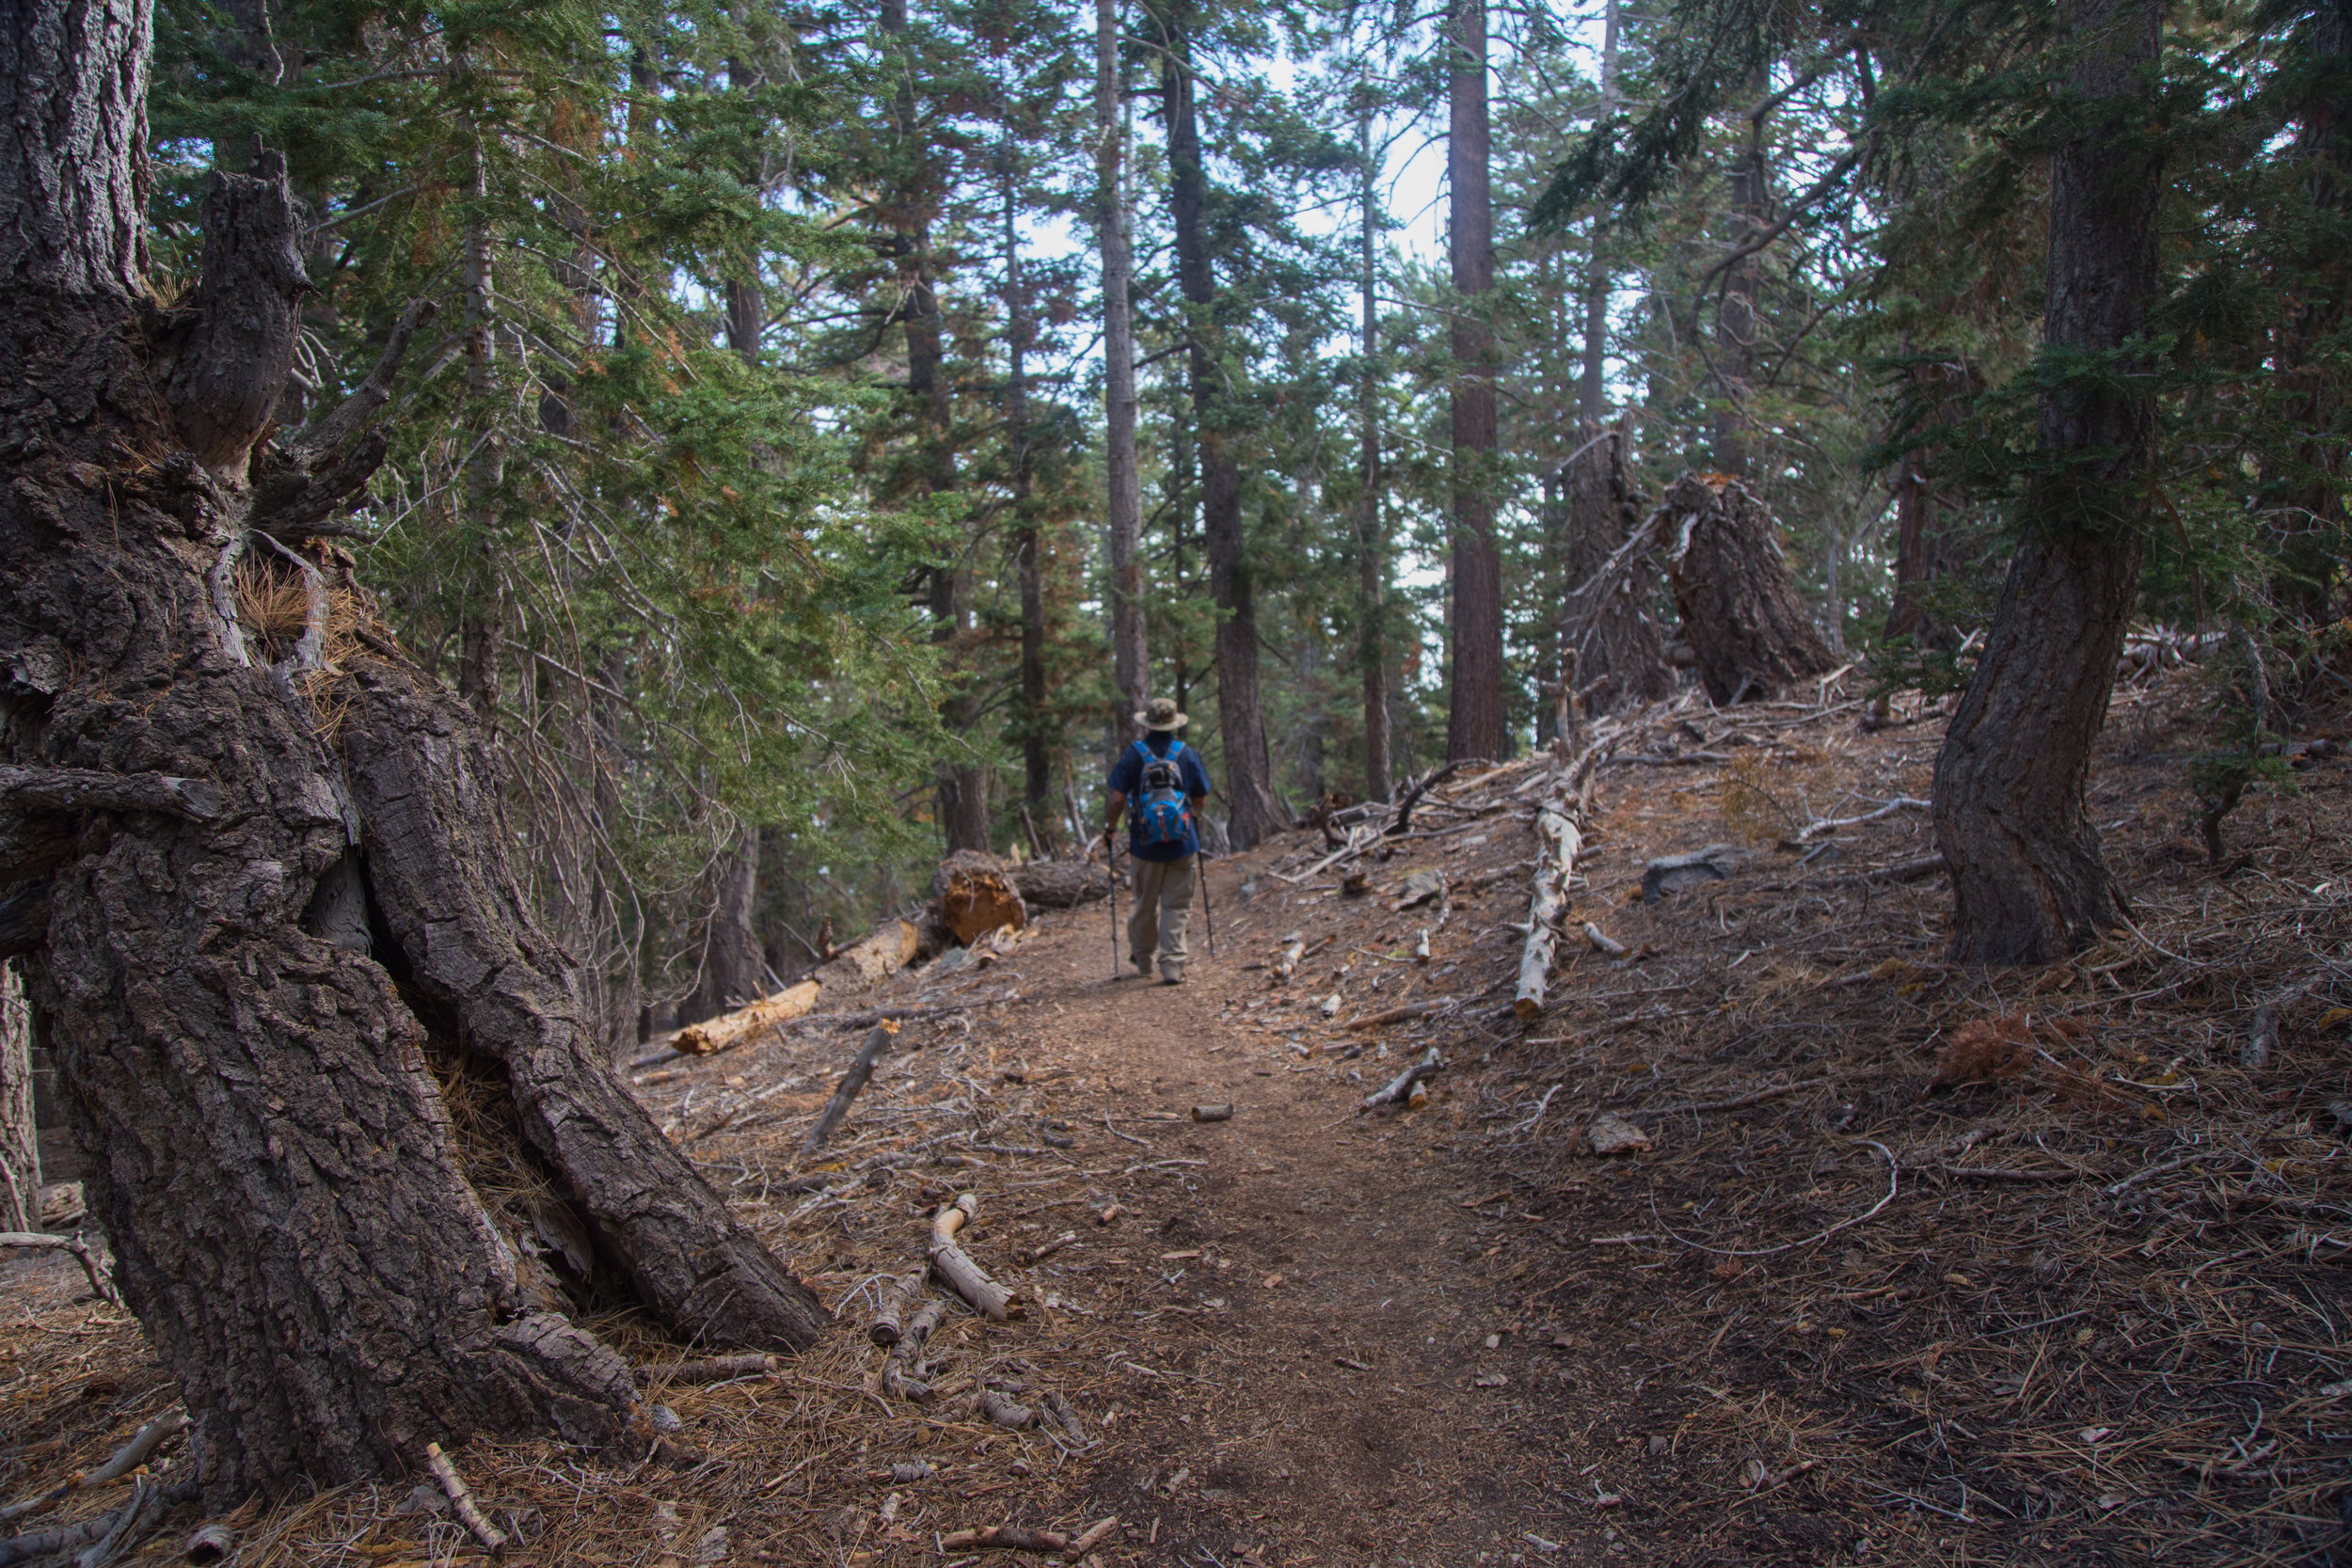 Walking along the PCT, a very pleasant stretch of trail.